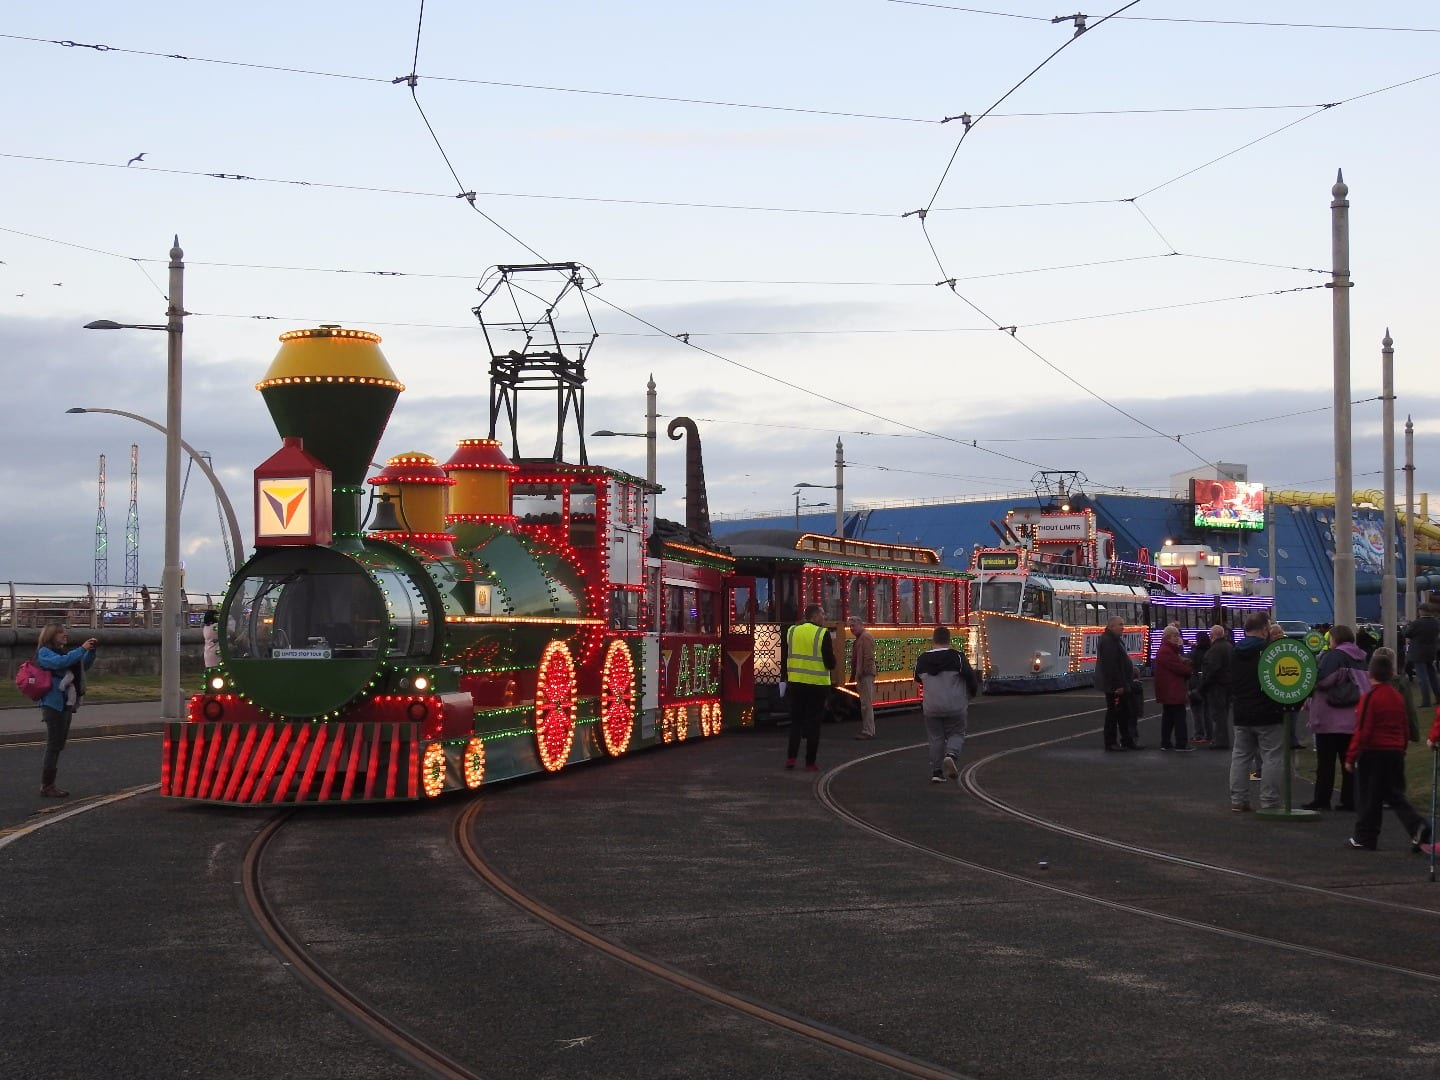 The three illuminated trams at Pleasure Beach